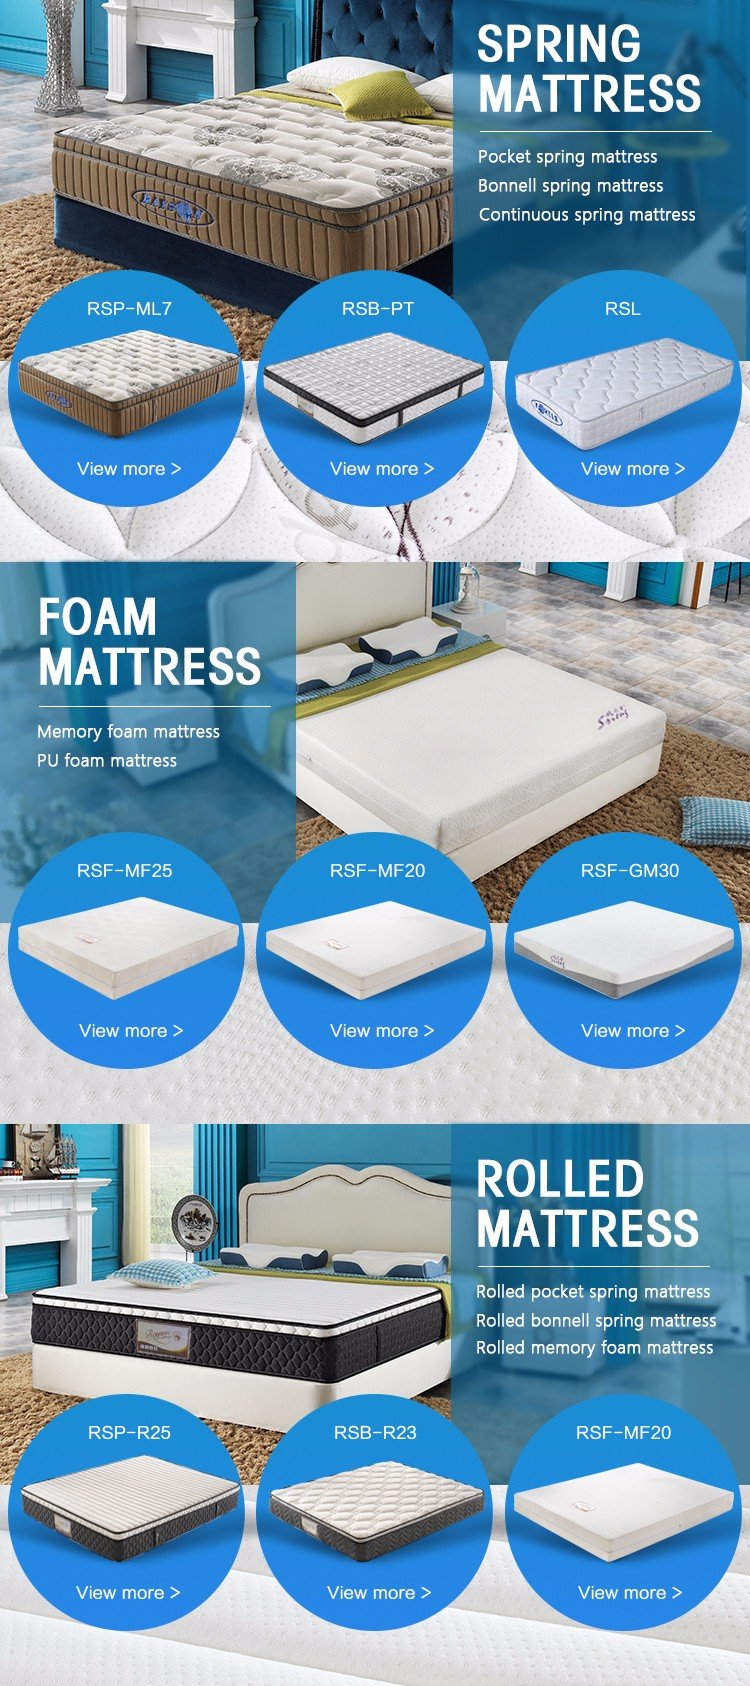 Latest sealy anniversary mattress top Suppliers-7